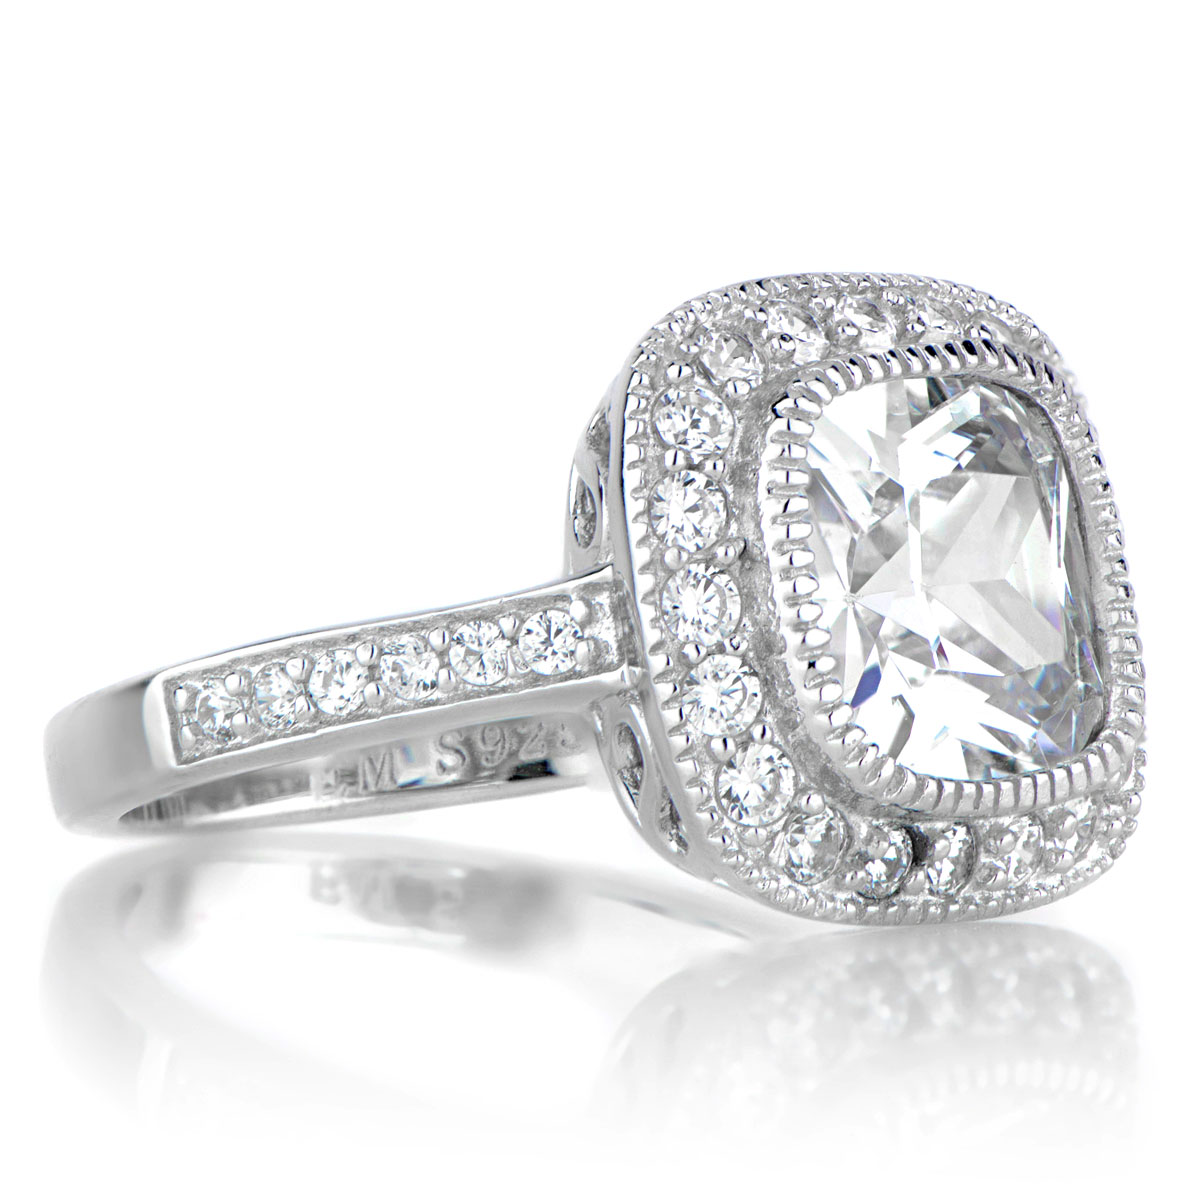 Gina s Vintage Style Halo Cushion Cut CZ Engagement Ring